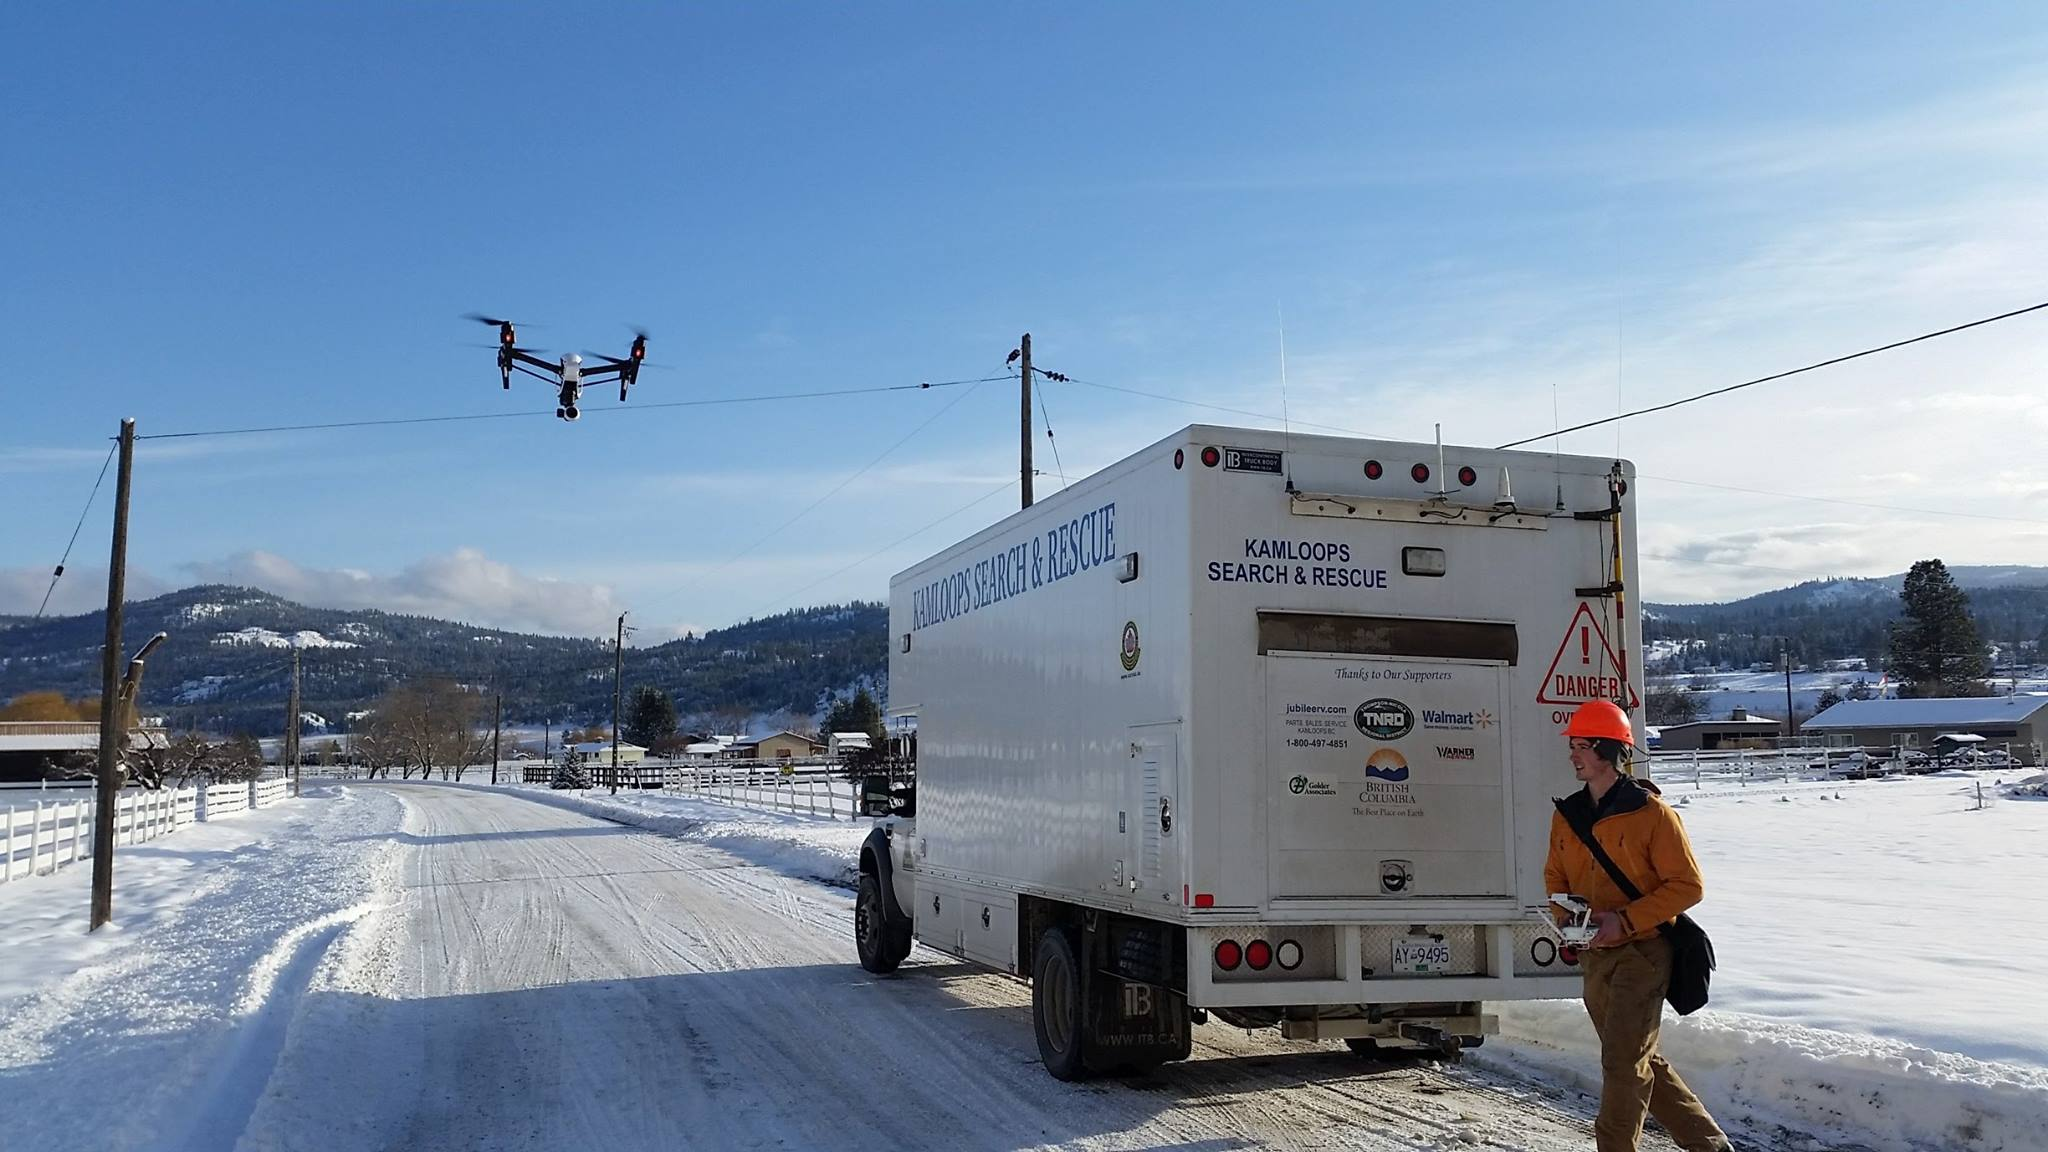 Drone technology used by Kamloops Search and Rescue will see another year of use